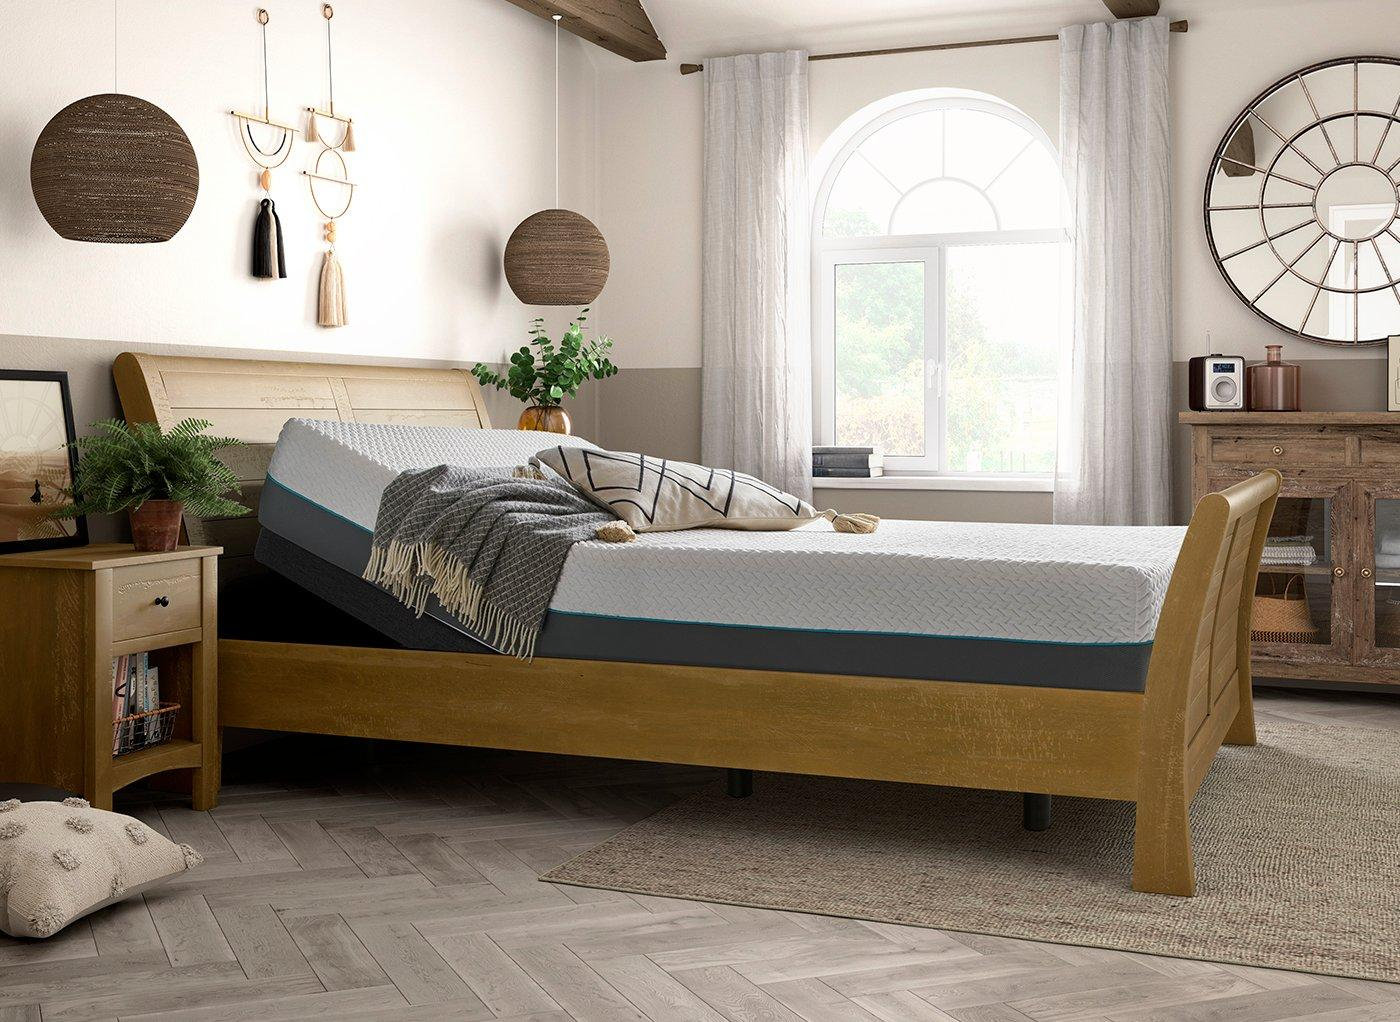 Dreams Kensington Sleepmotion 200i Adjustable Wooden Bed Frame from £558